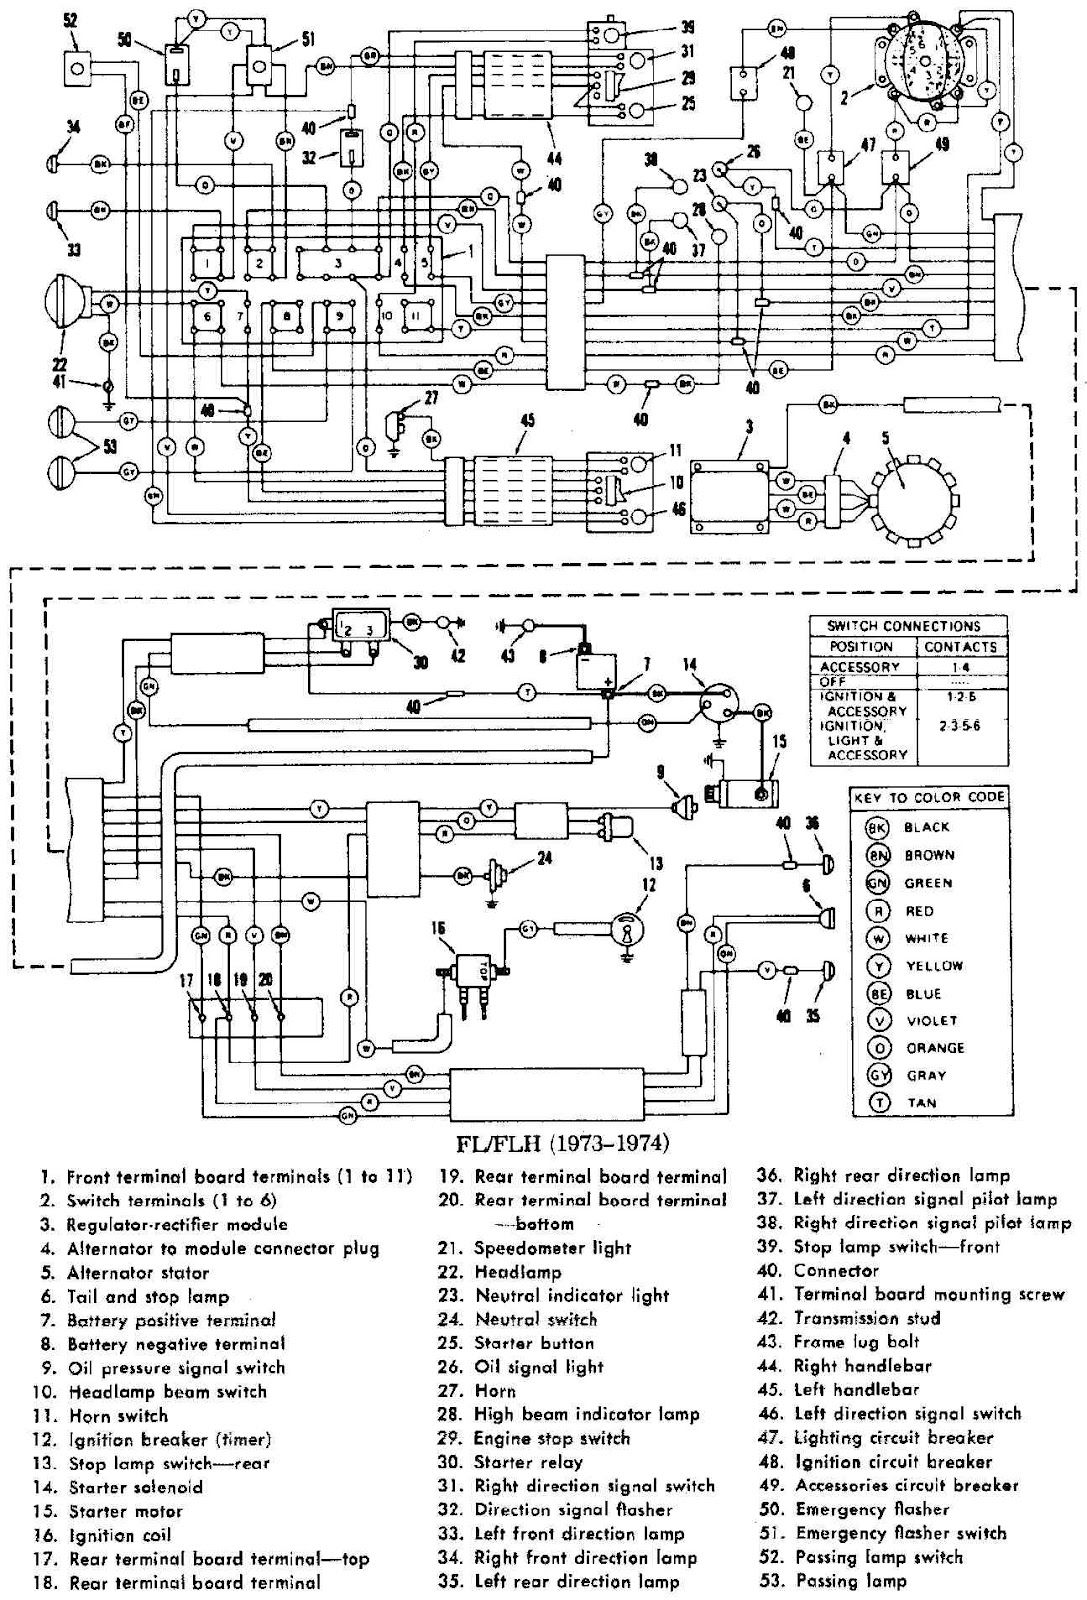 1975 Harley Davidson Engine Diagram Wiring Diagram Schematic Library Format Library Format Aliceviola It